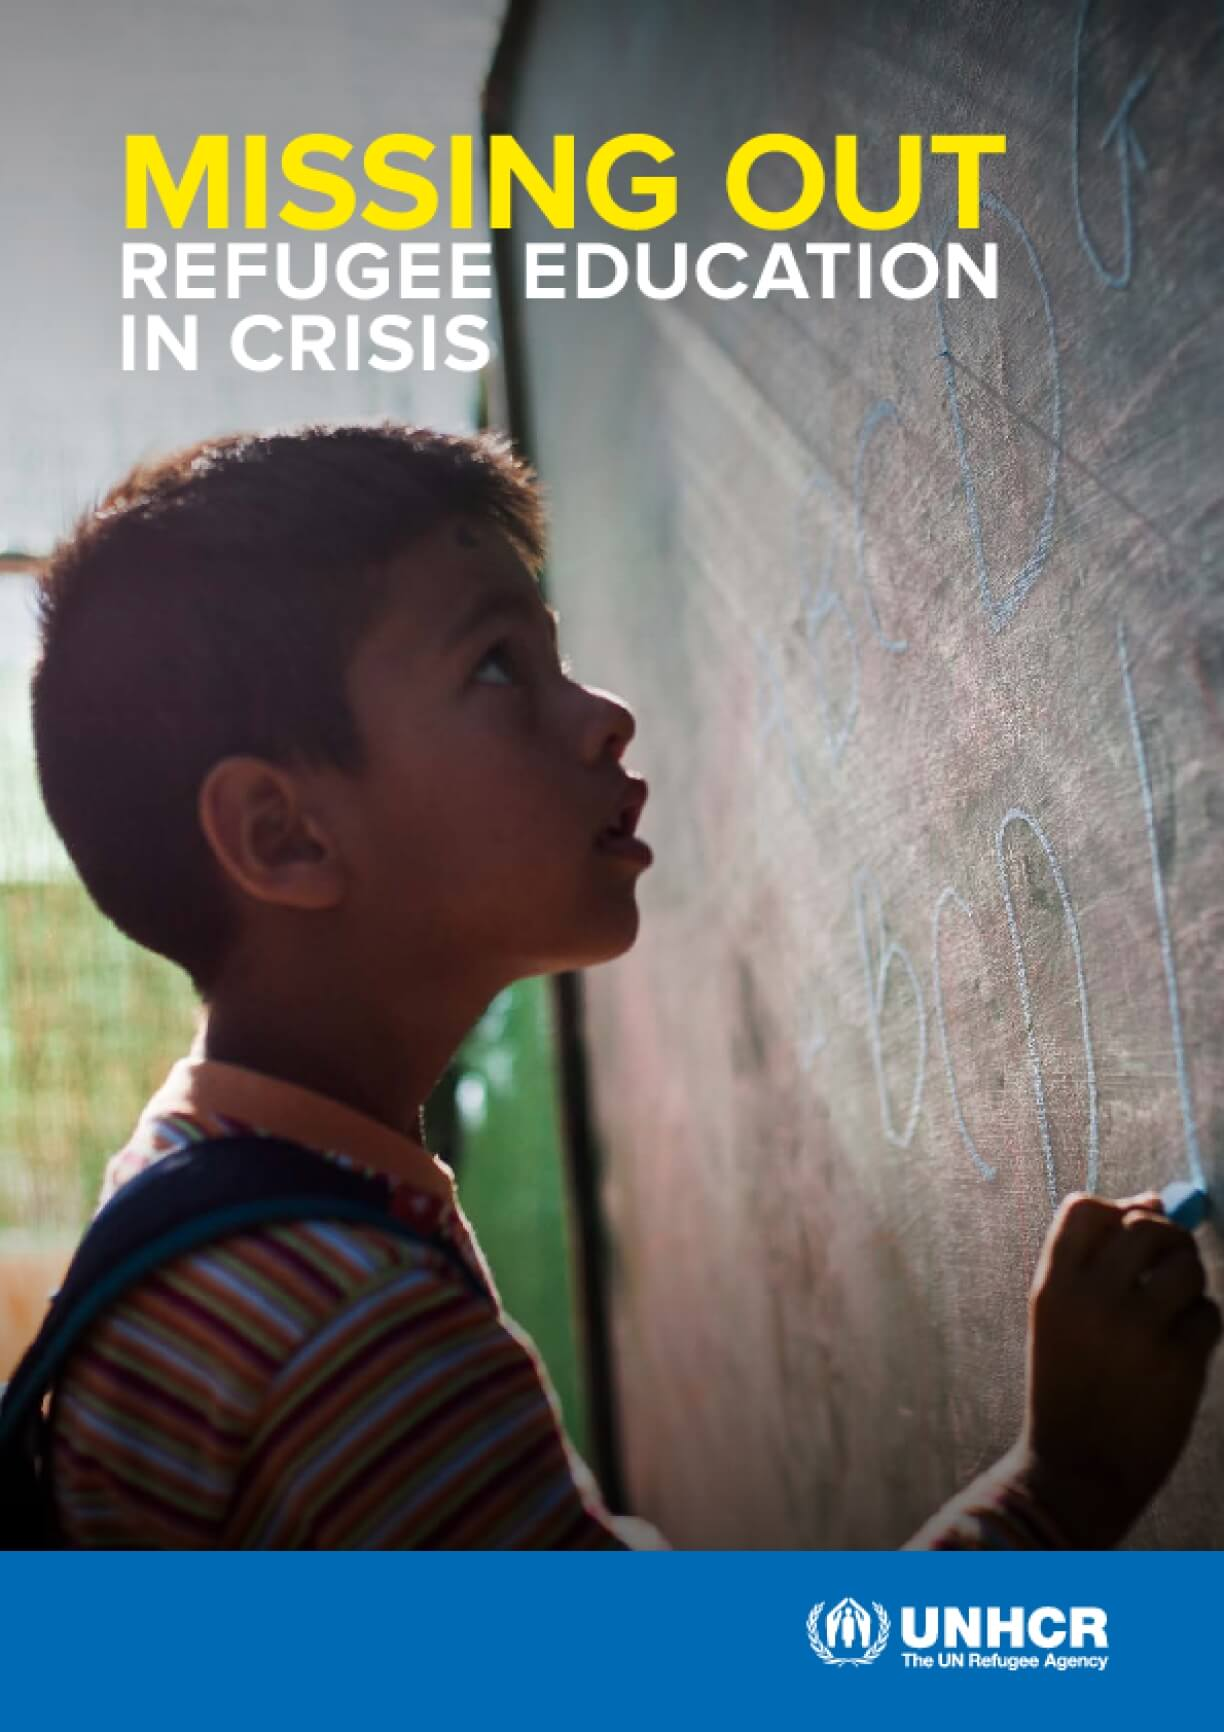 Missing Out: Refugee Education in Crisis